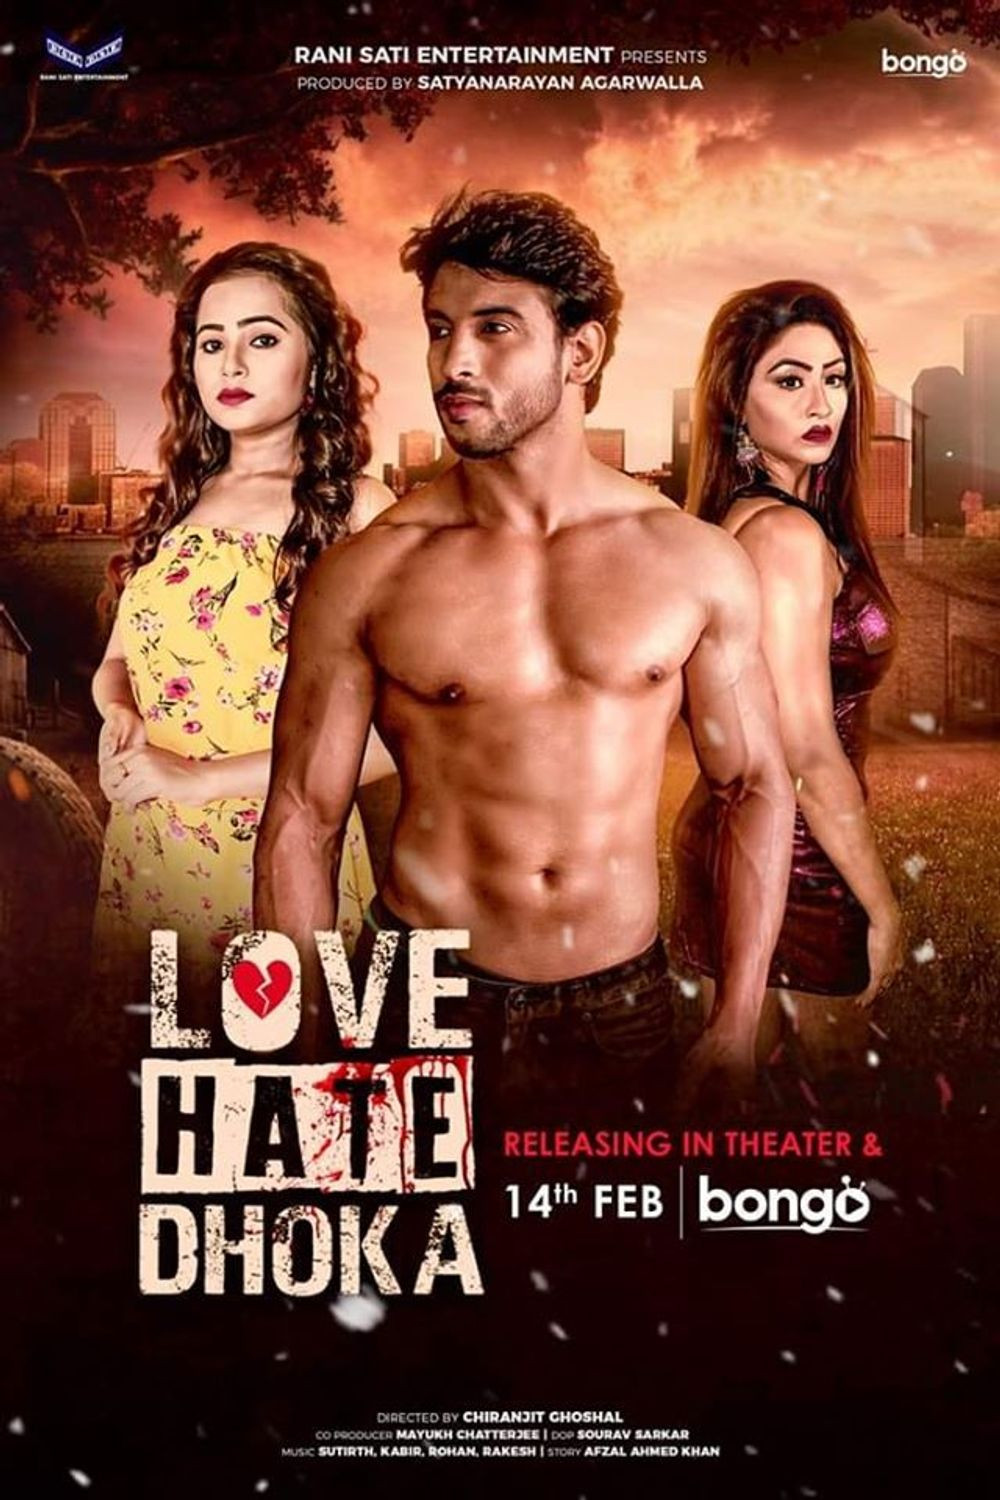 Love Hate Dhoka 2020 Bengali Movie 720p HDRip 700MB MKV x264 AAC